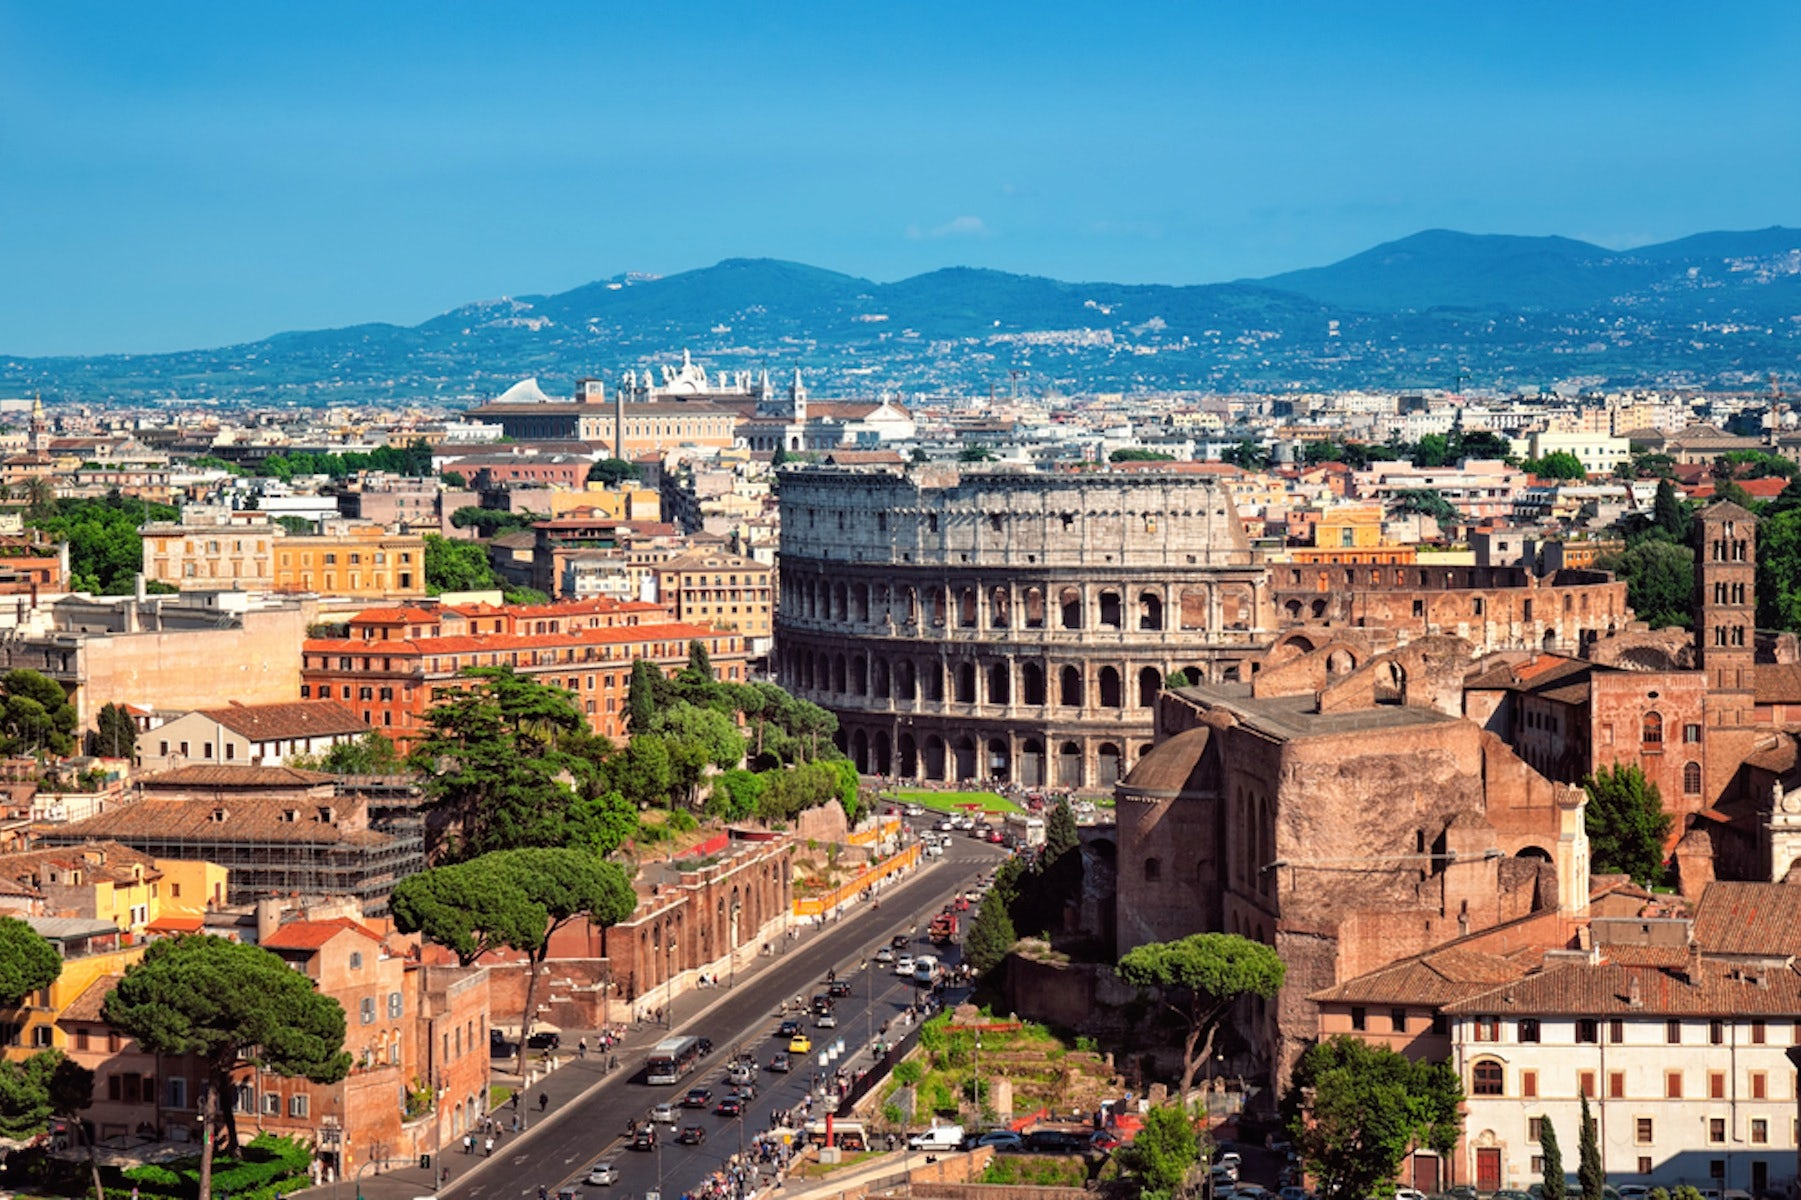 Rome | Source: Shutterstock